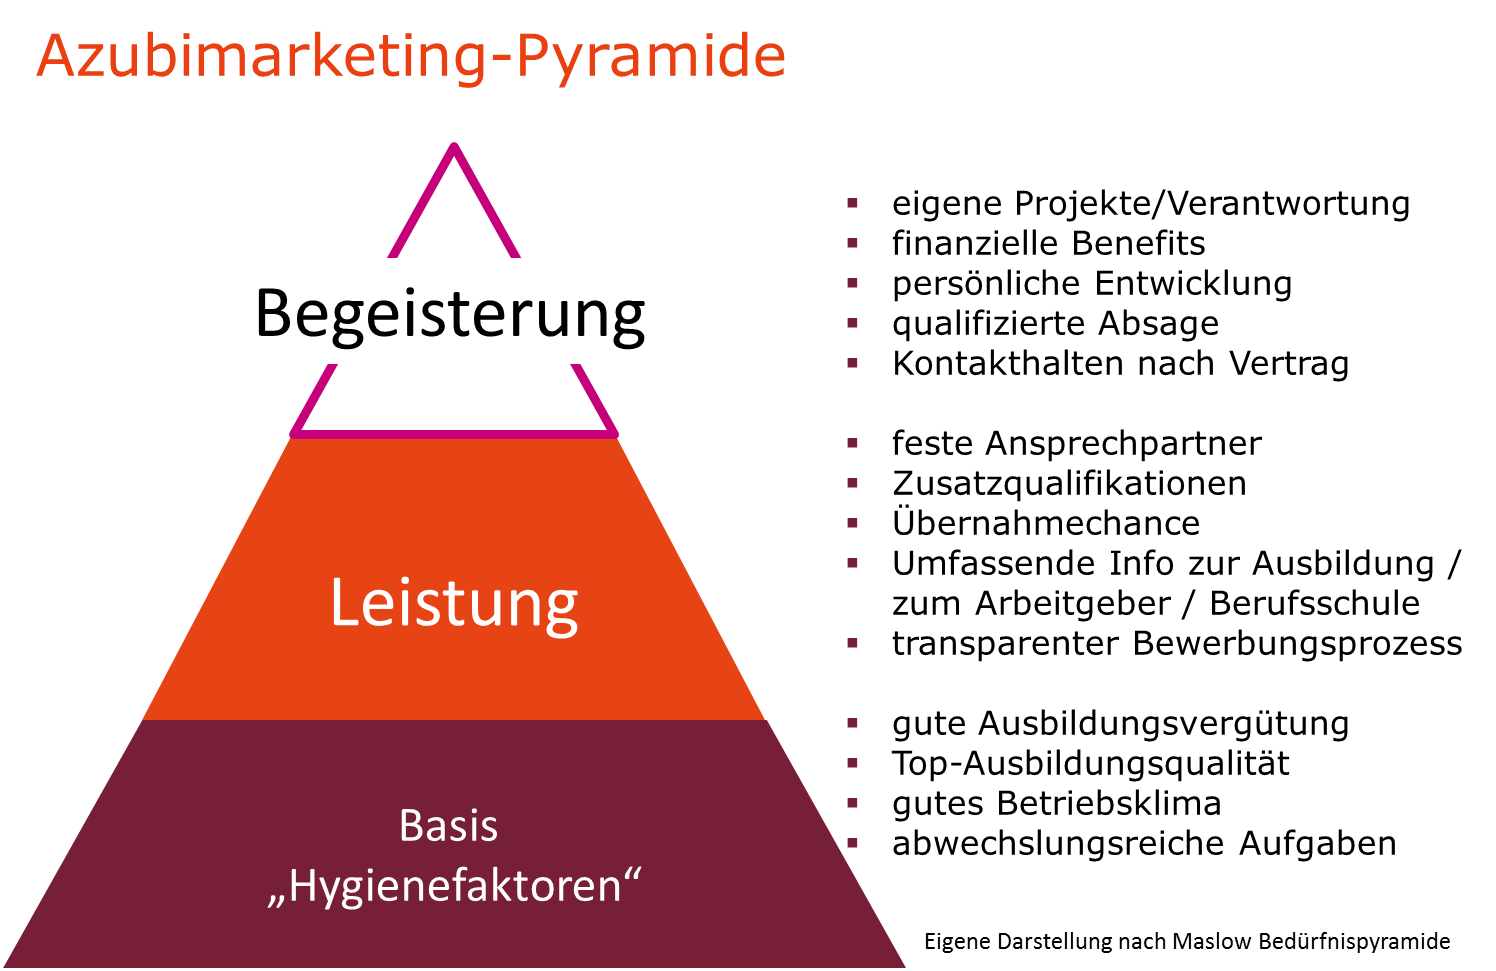 AZUBI Marketing Pyramide.png